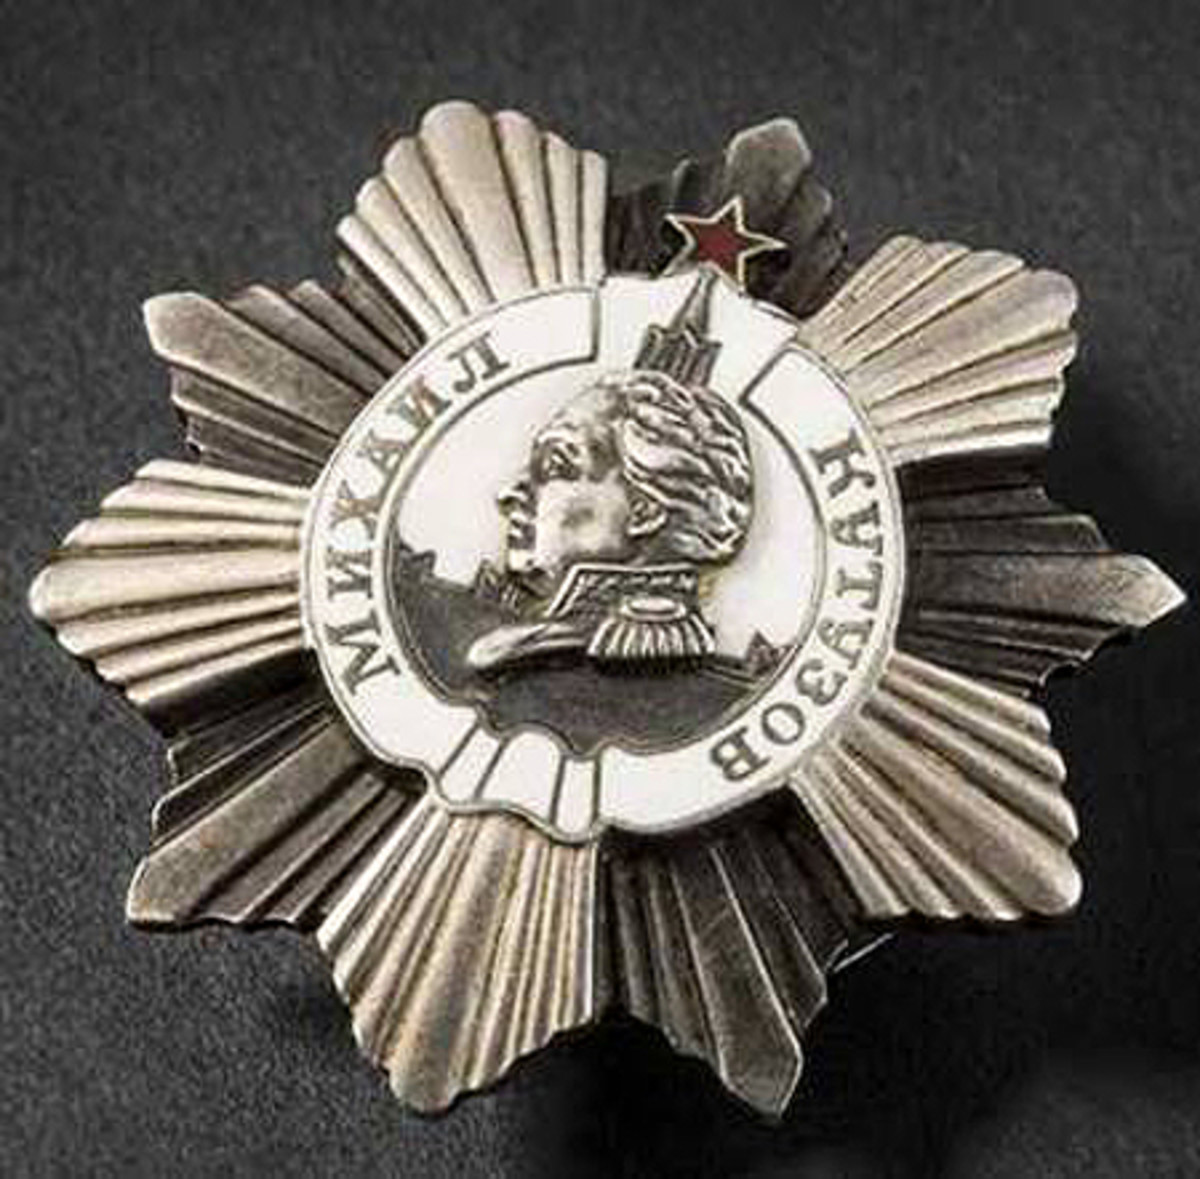 A Soviet Order of Kutusov 2nd Class awarded (1943) to Kirill Chumak (1900-83).